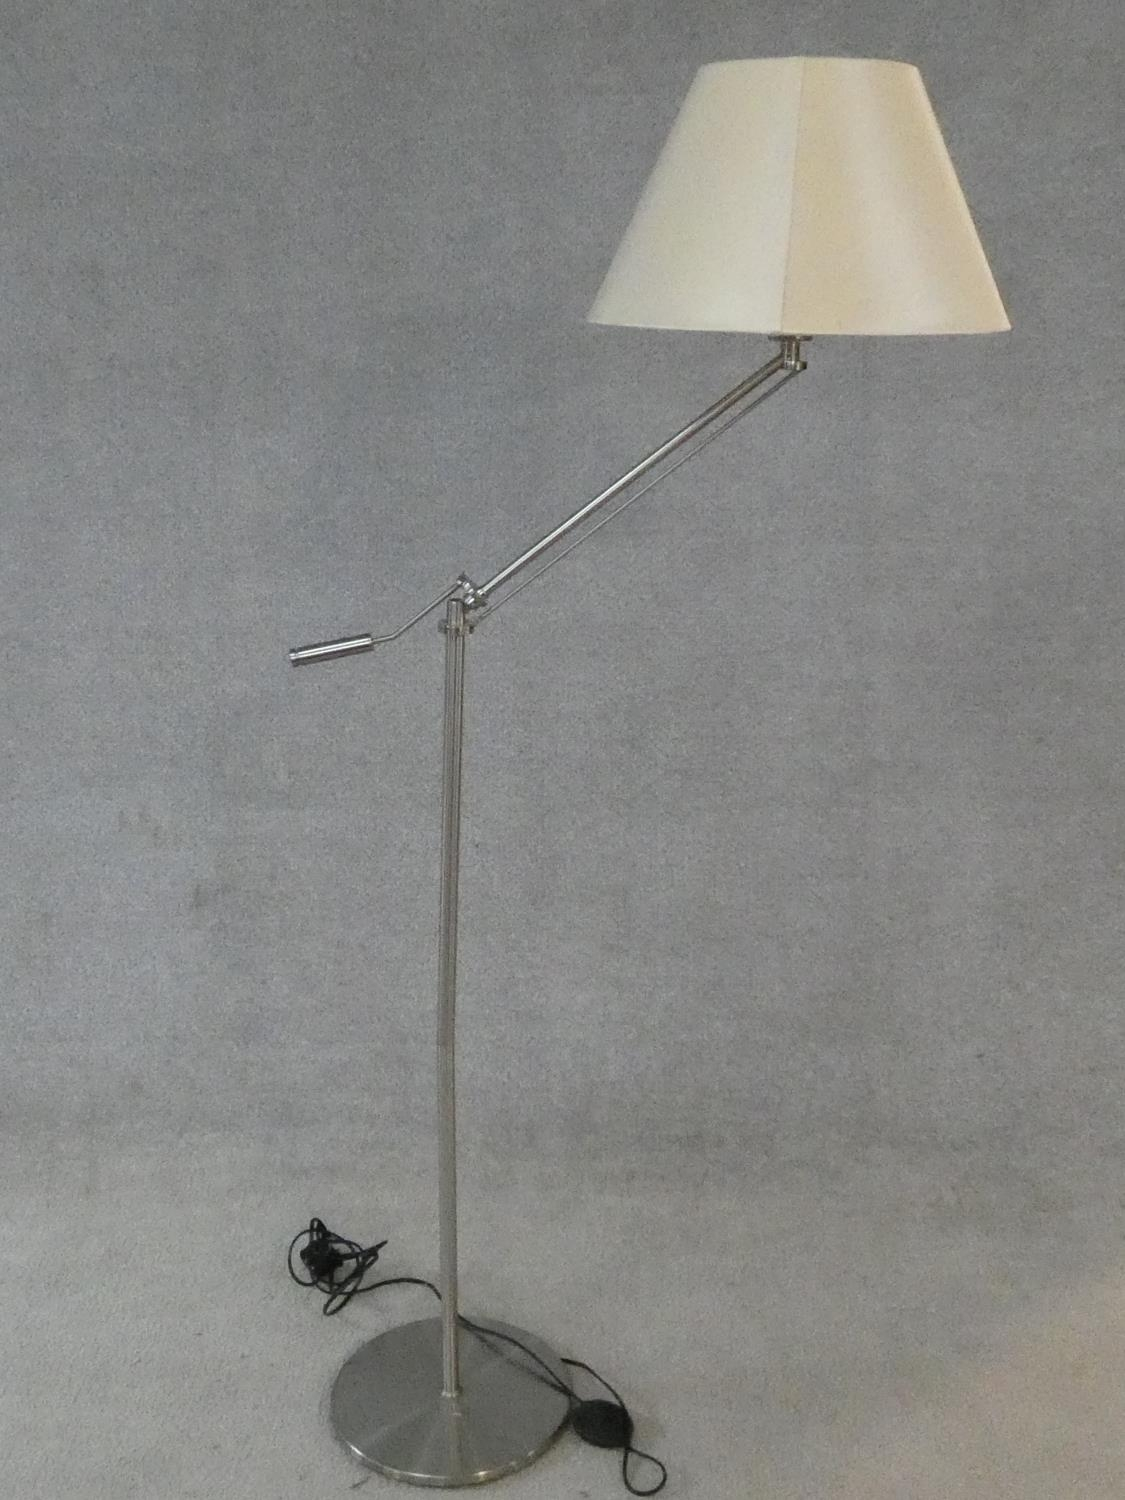 Two brass standard lamps with articulated actions and a chrome adjustable standard lamp. H.162cm - Image 8 of 16